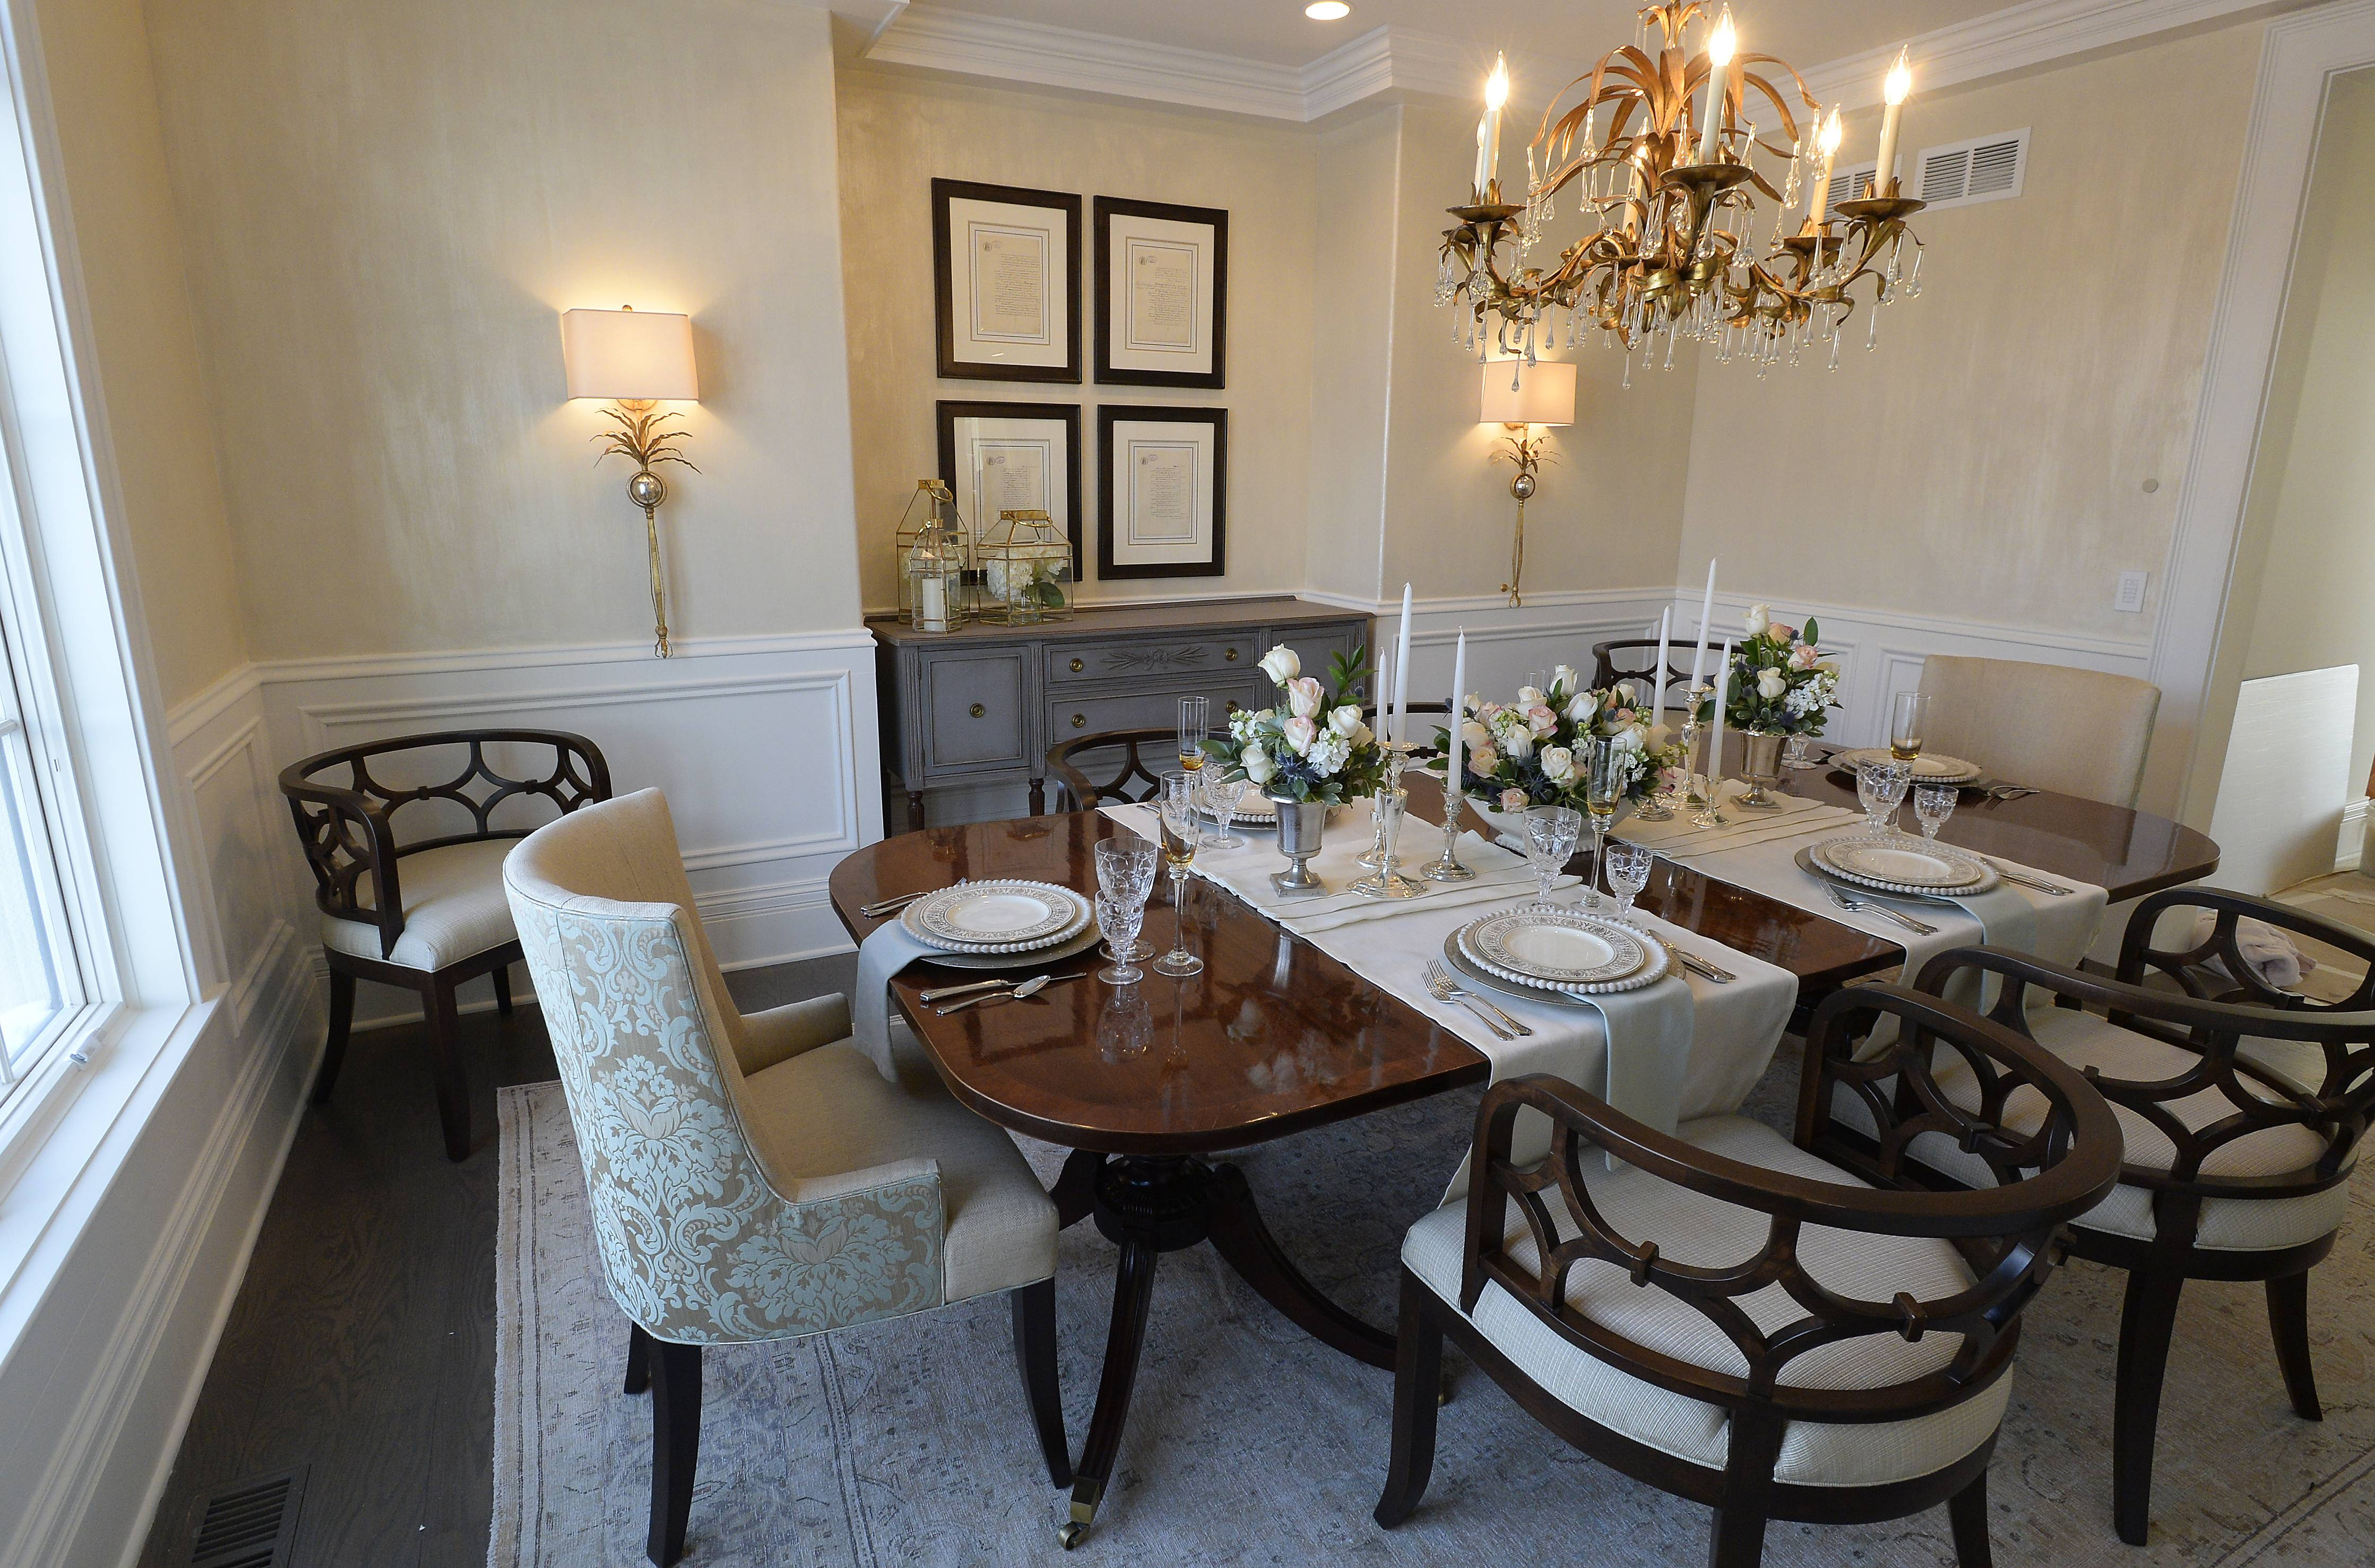 Meredith Park, owner of an Inverness interior design firm, designed the home's dining room using a mixture of traditional and transitional styles, including a vintage table and buffet that outgassed years ago and is now safe.